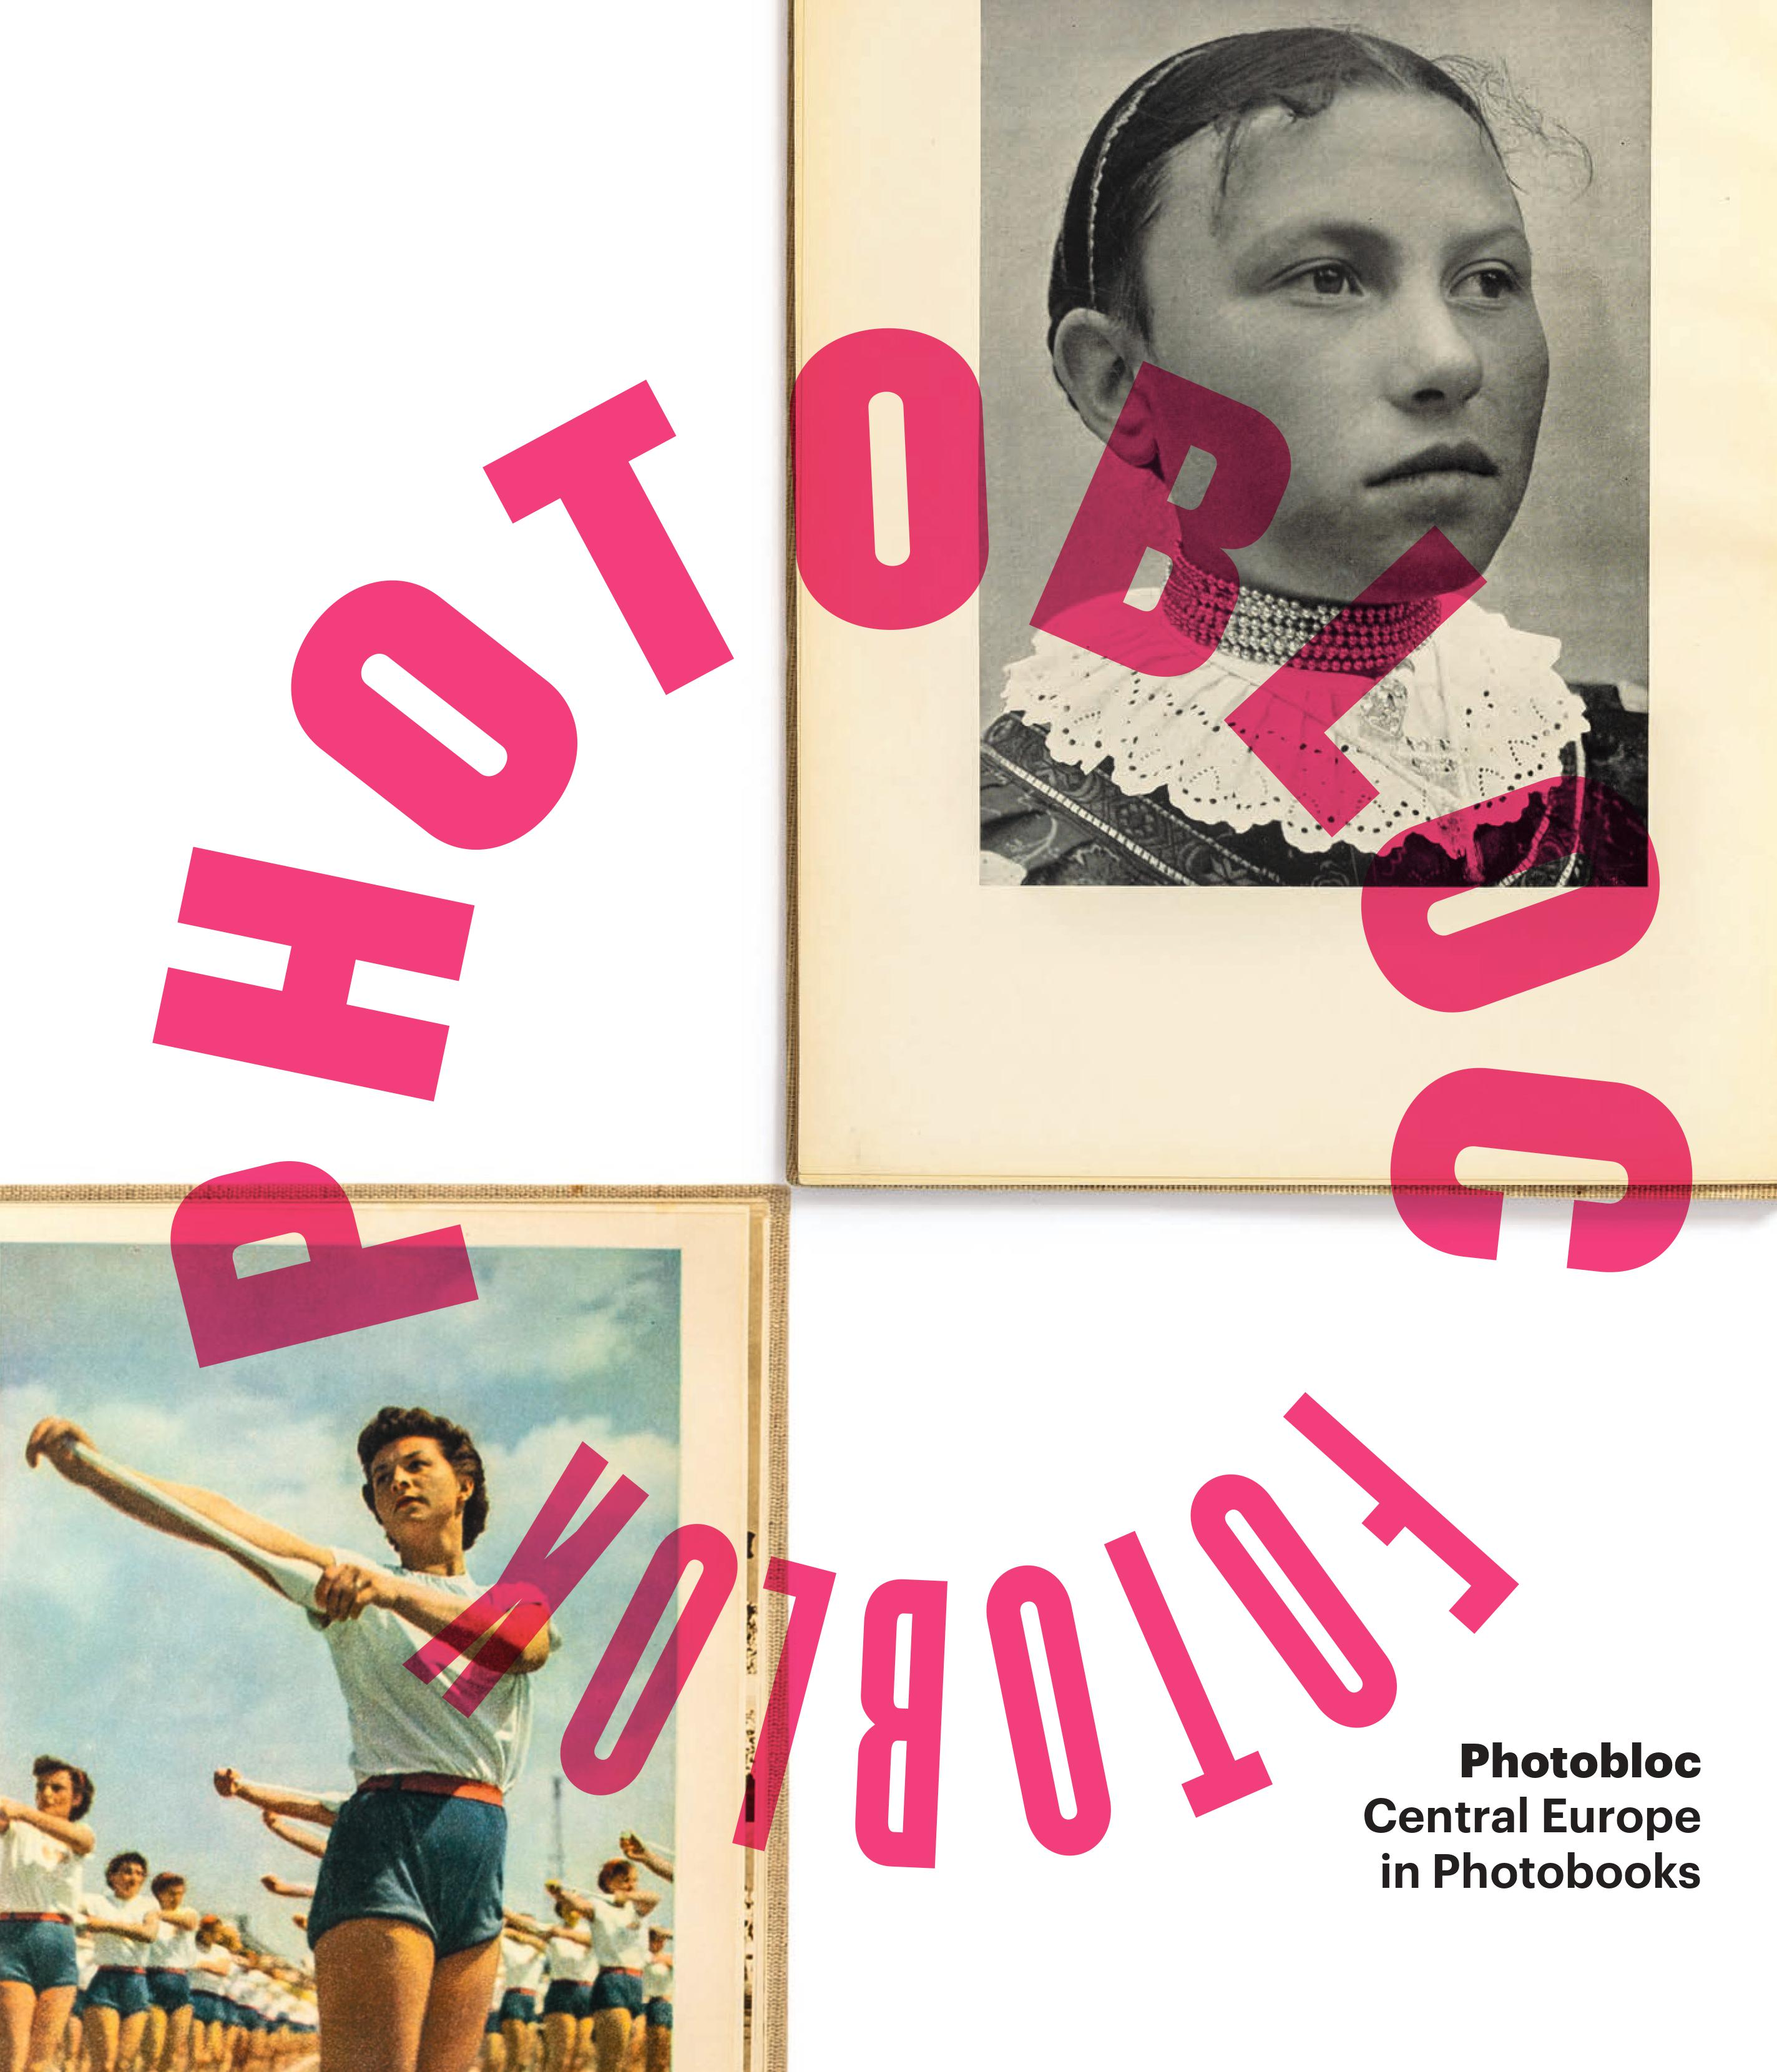 Photobloc. Central Europe in Photobooks